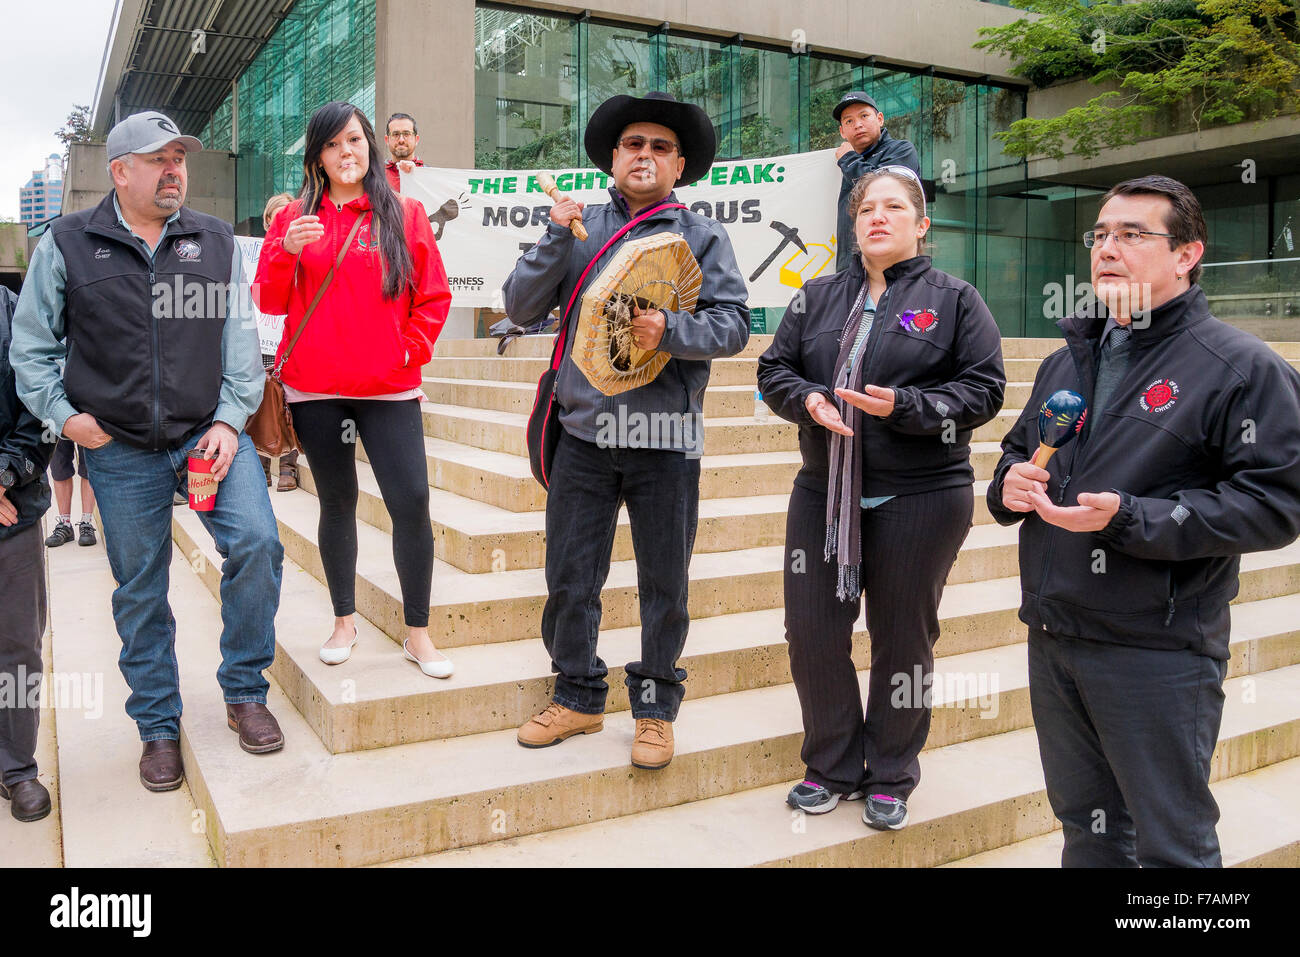 Tsilhqot'in Nation Chiefs rally outside Provincial Law Courts, Vancouver, British Columbia, Canada - Stock Image